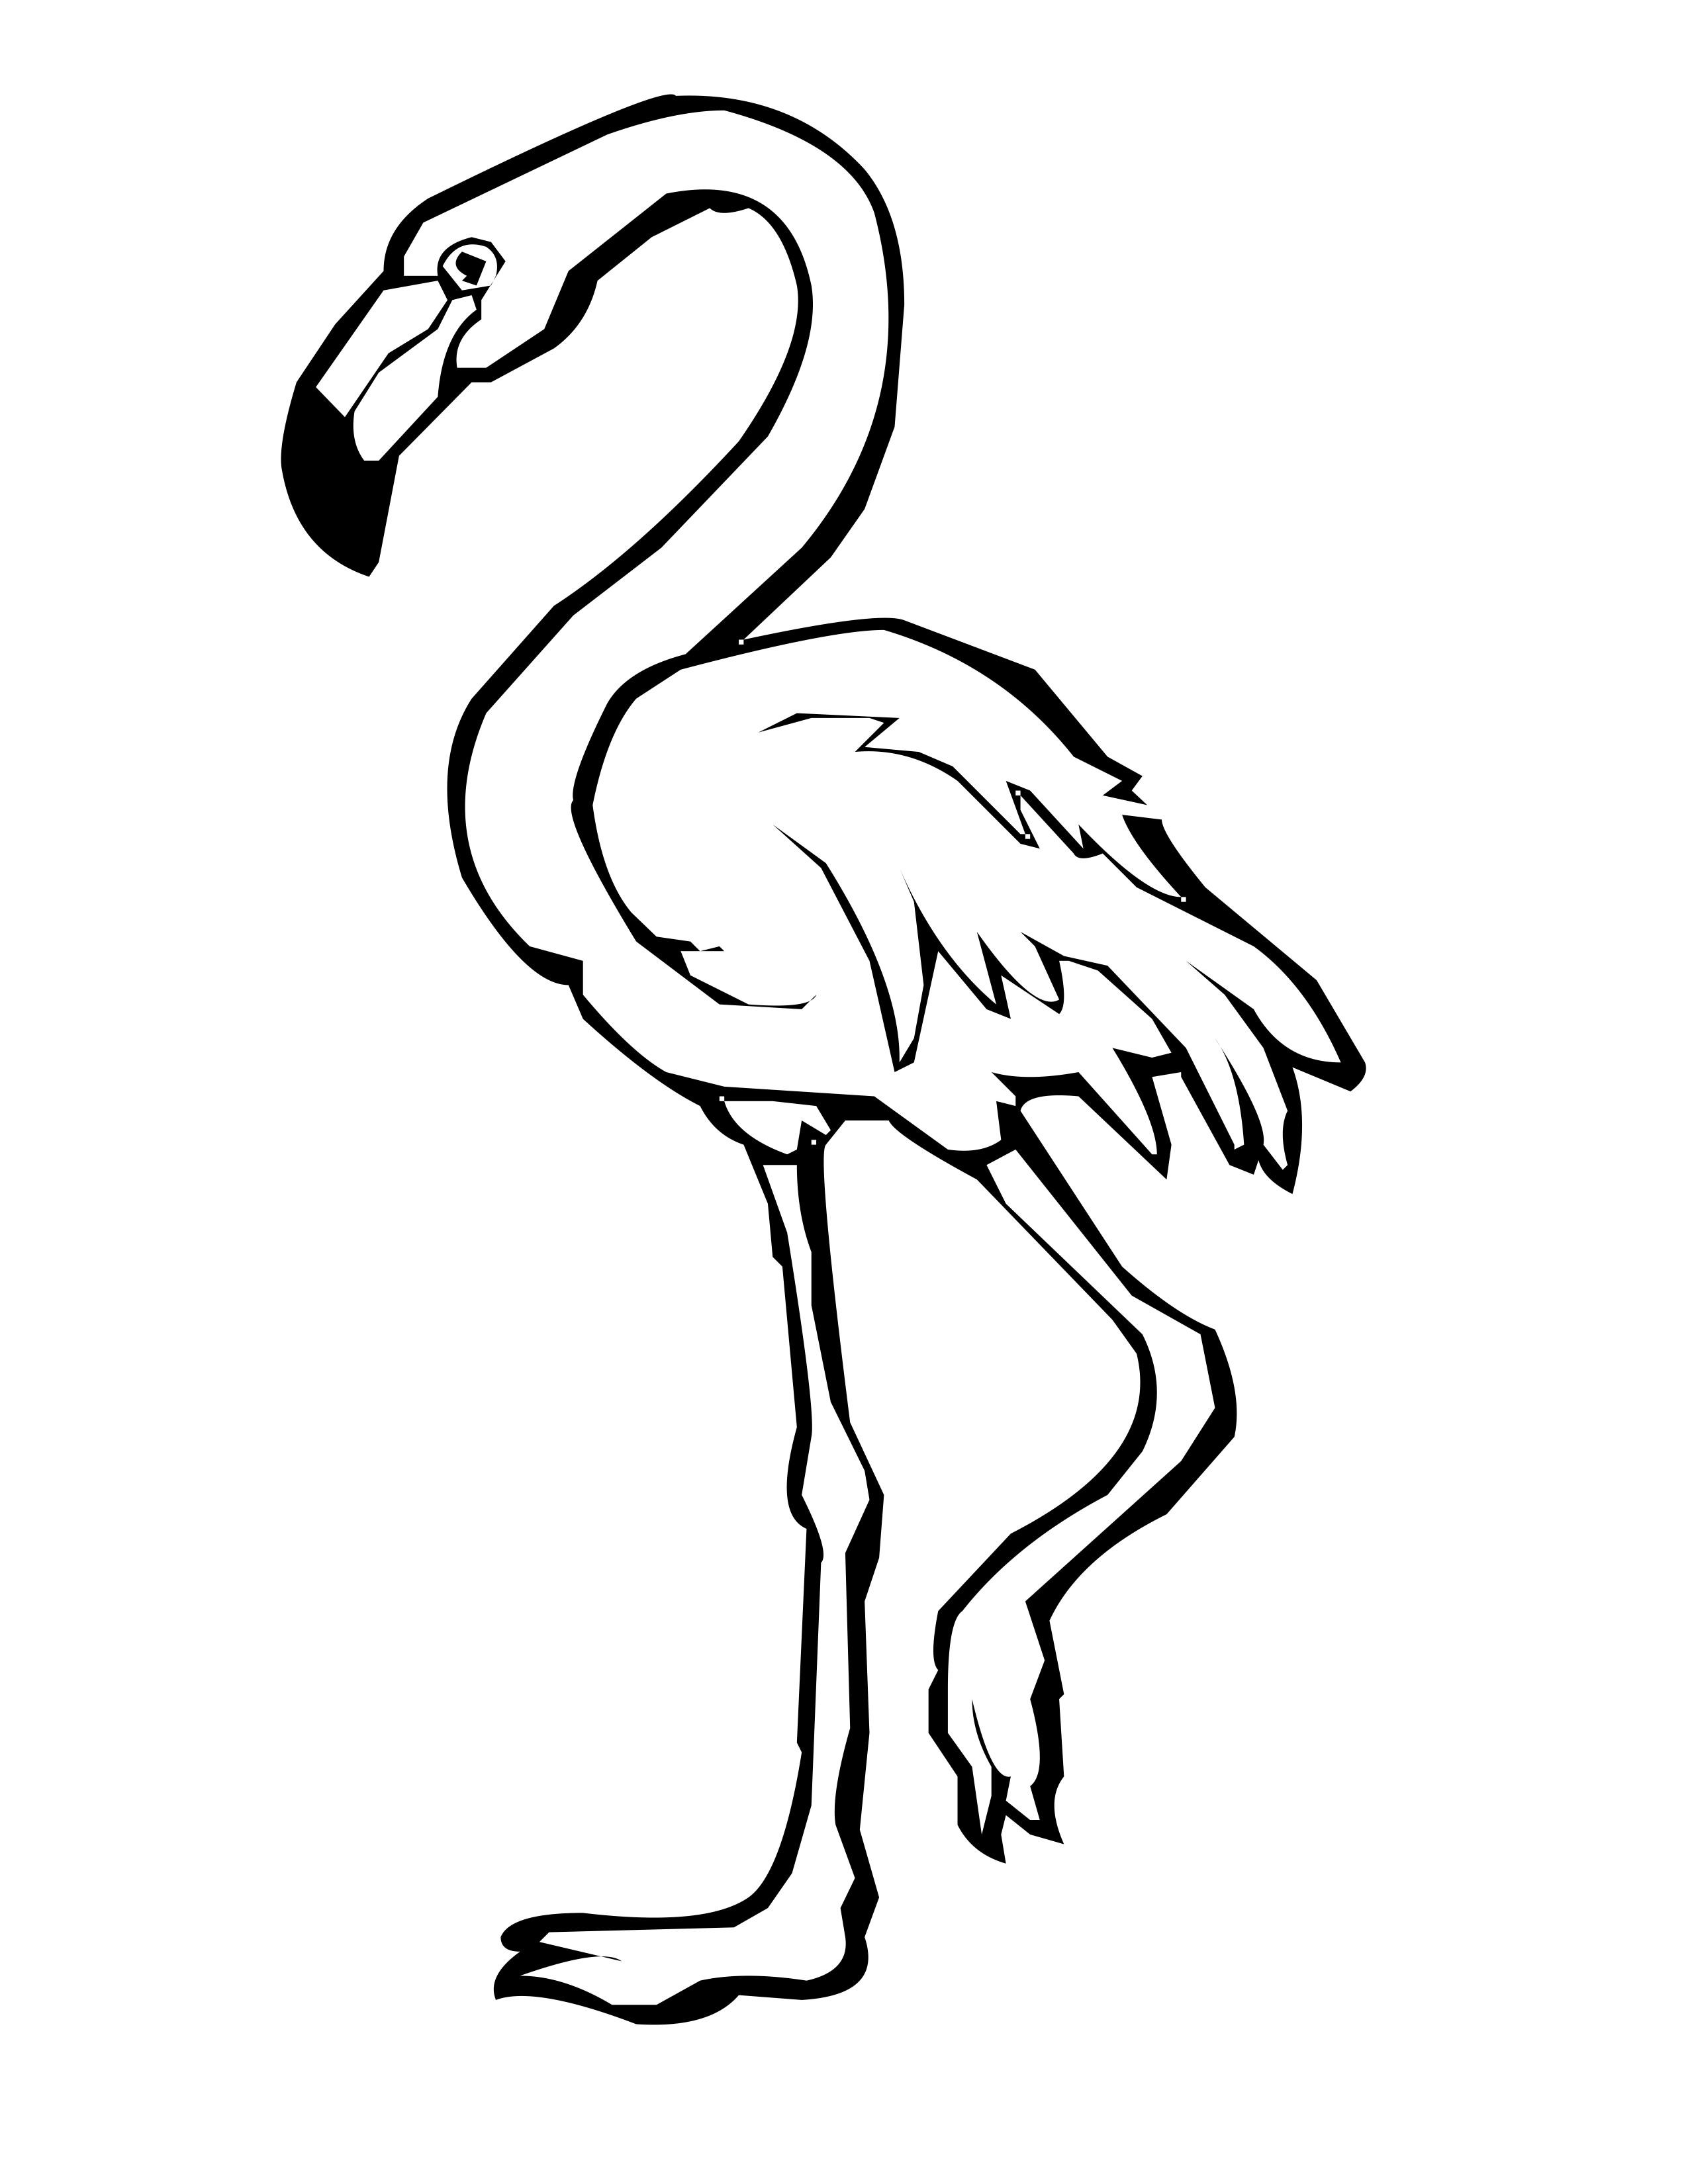 flamingo coloring page flamingo coloring pages to download and print for free flamingo page coloring